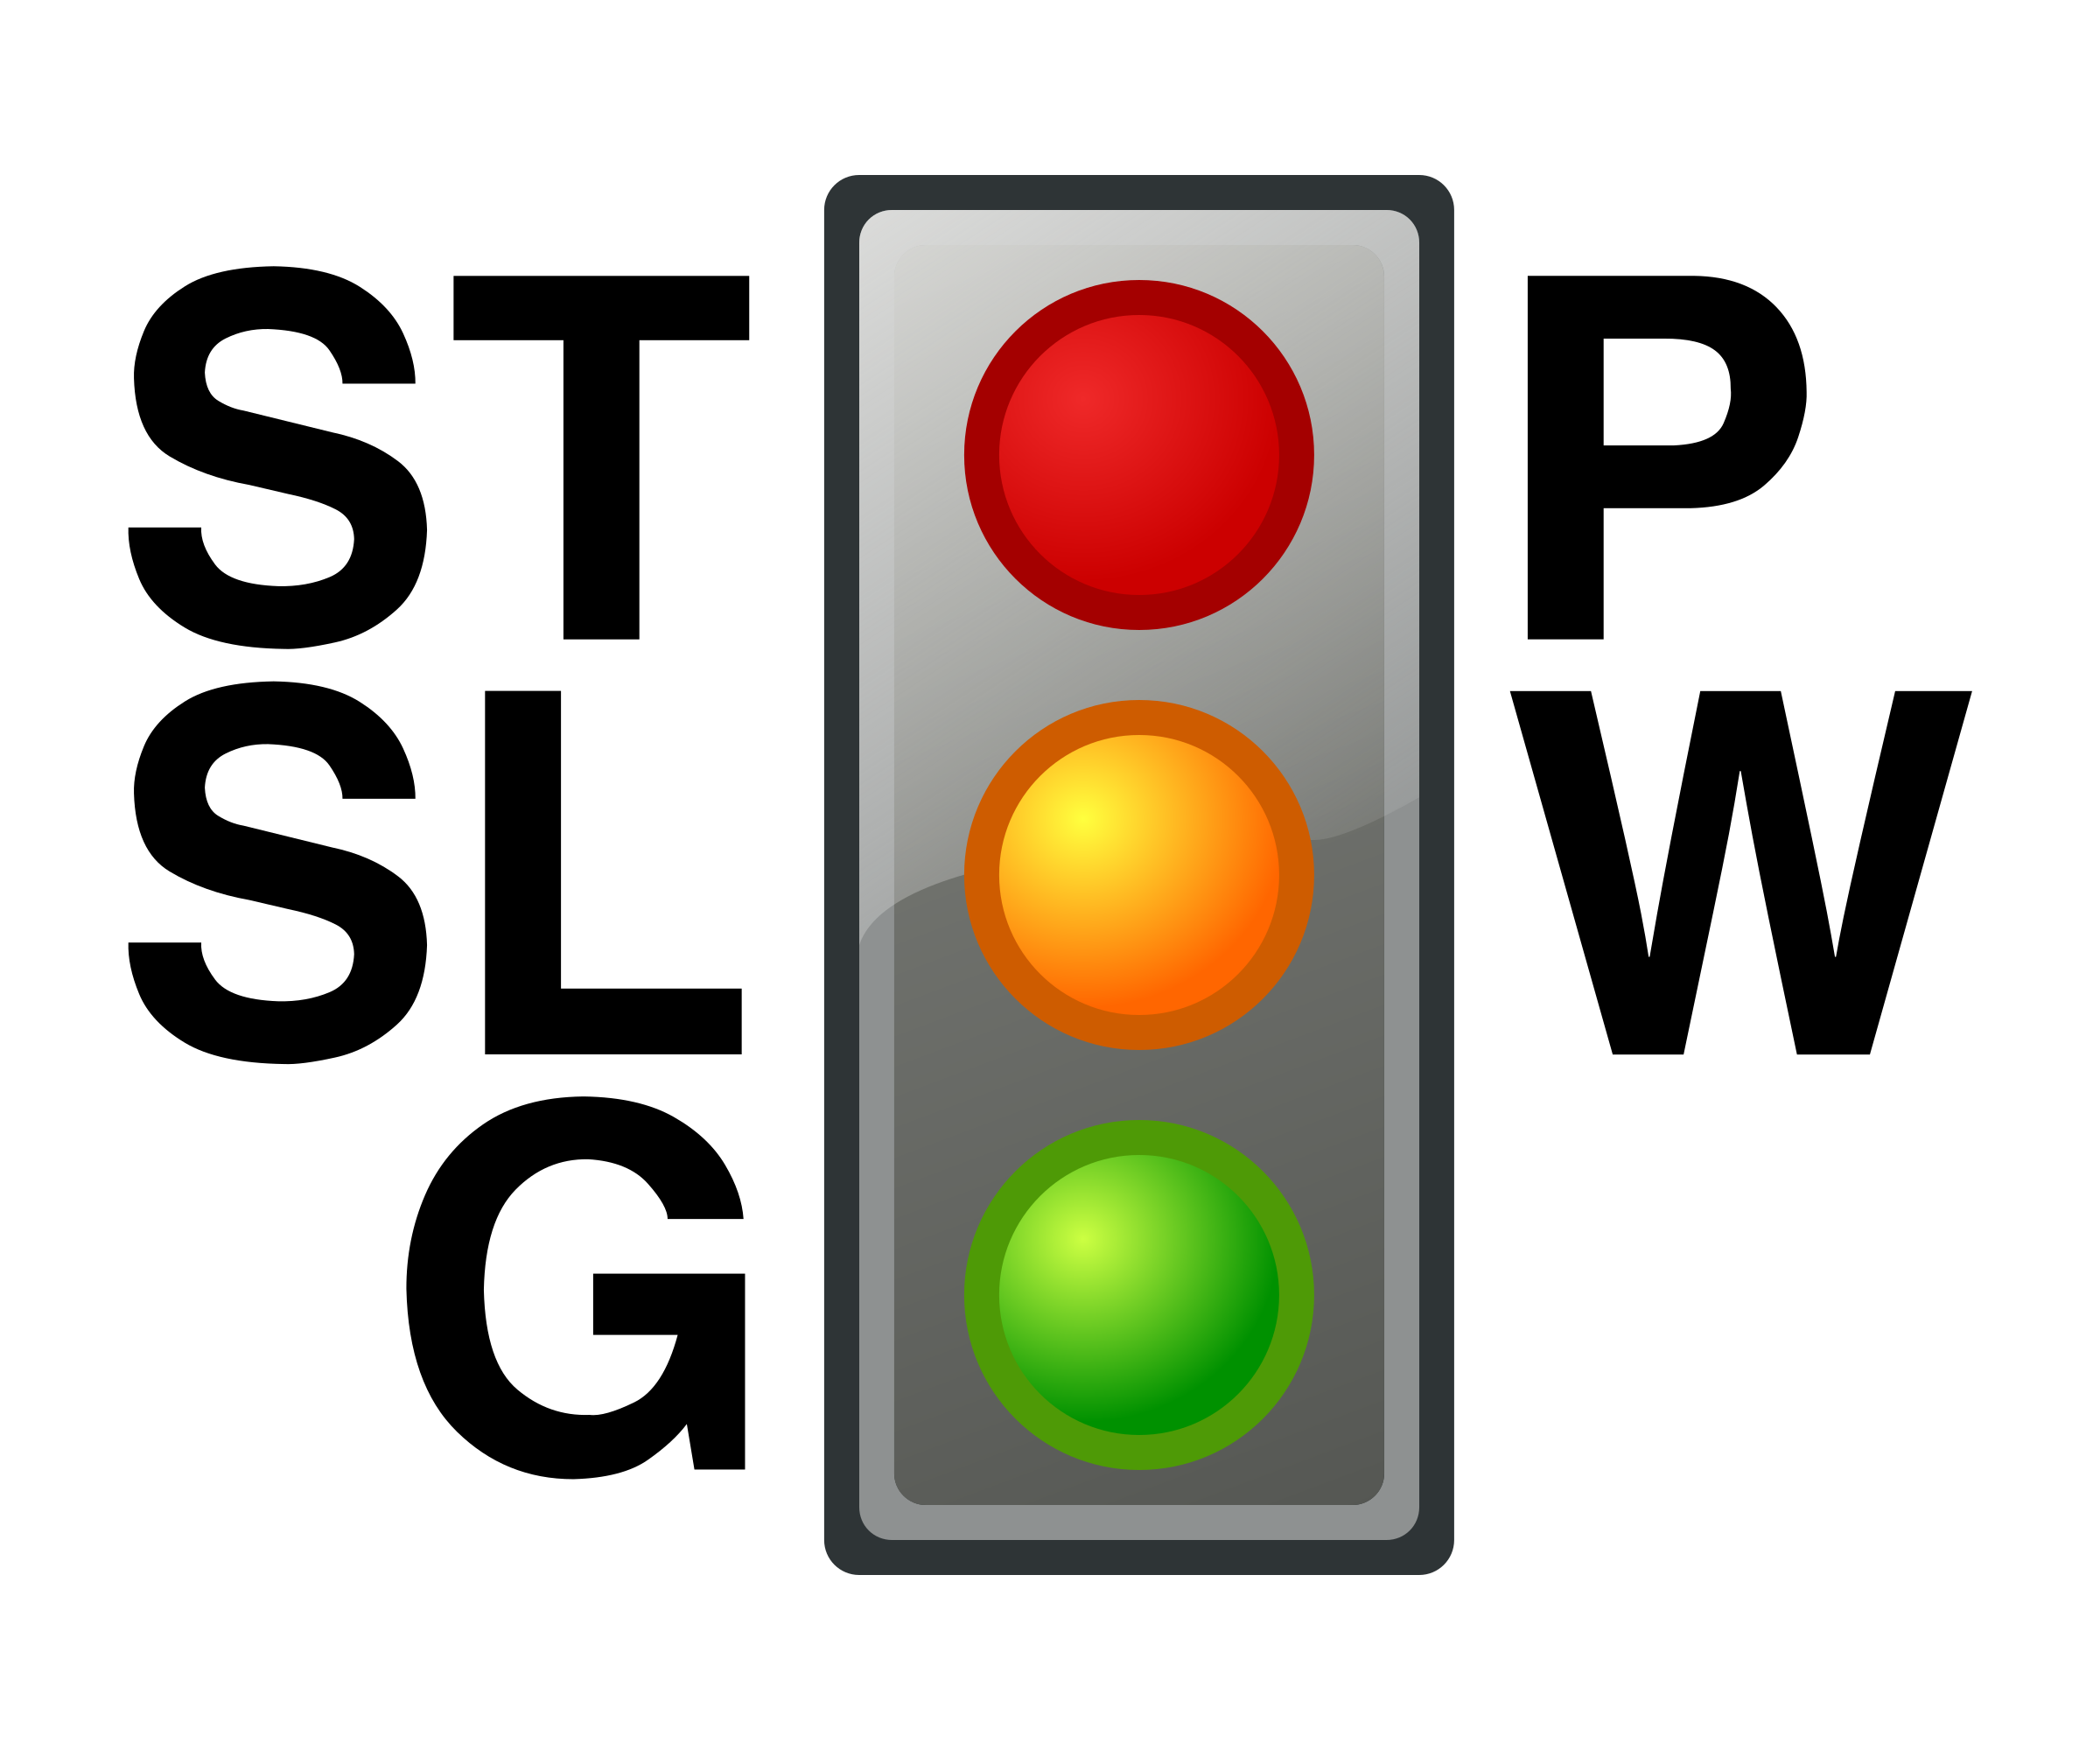 Meaning of the traffic lights by jhnri4